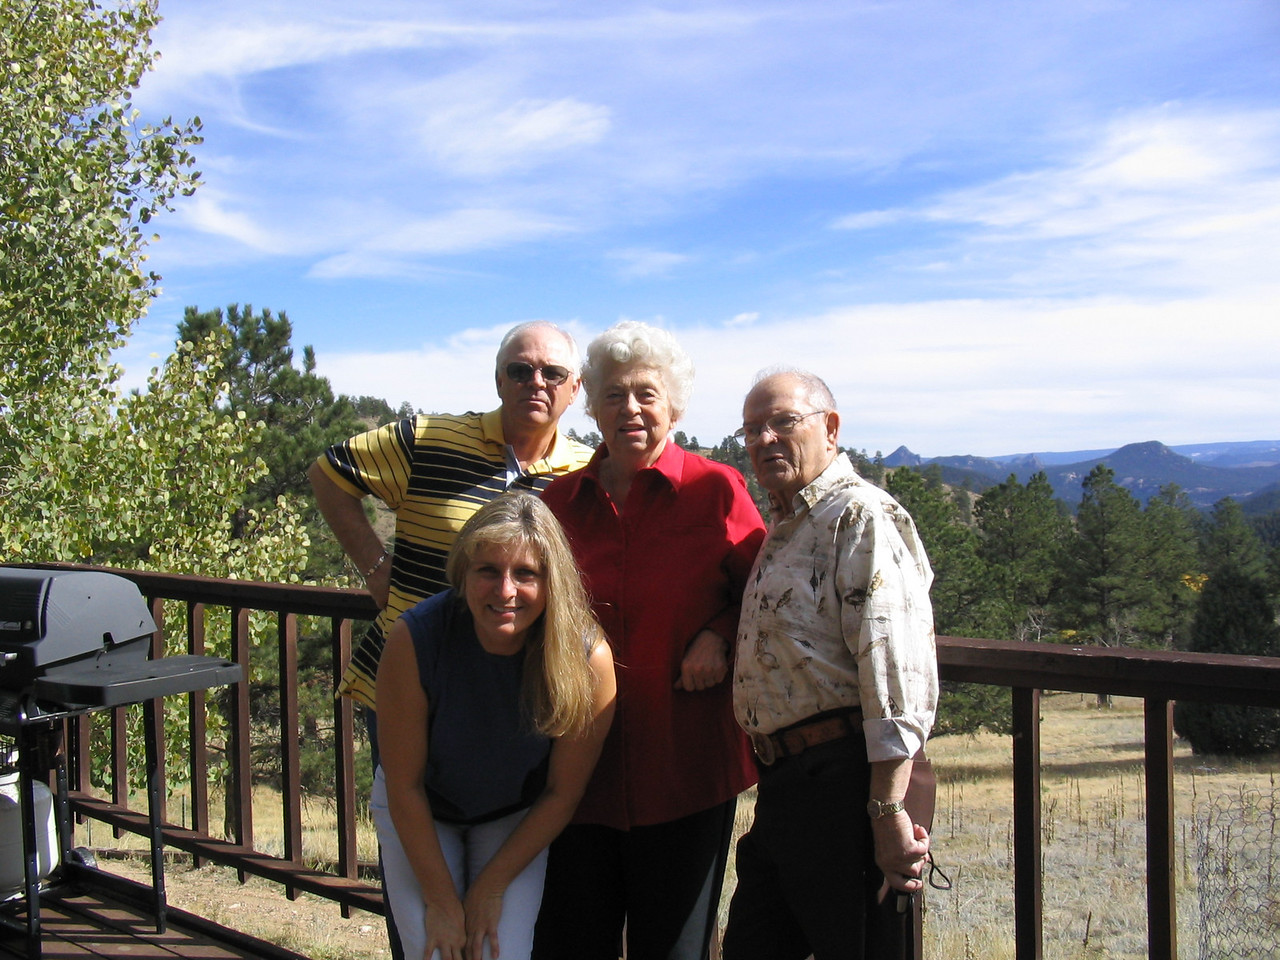 Dad, Grandma, Grandad and Aunt Pam at her house outside of Denver.